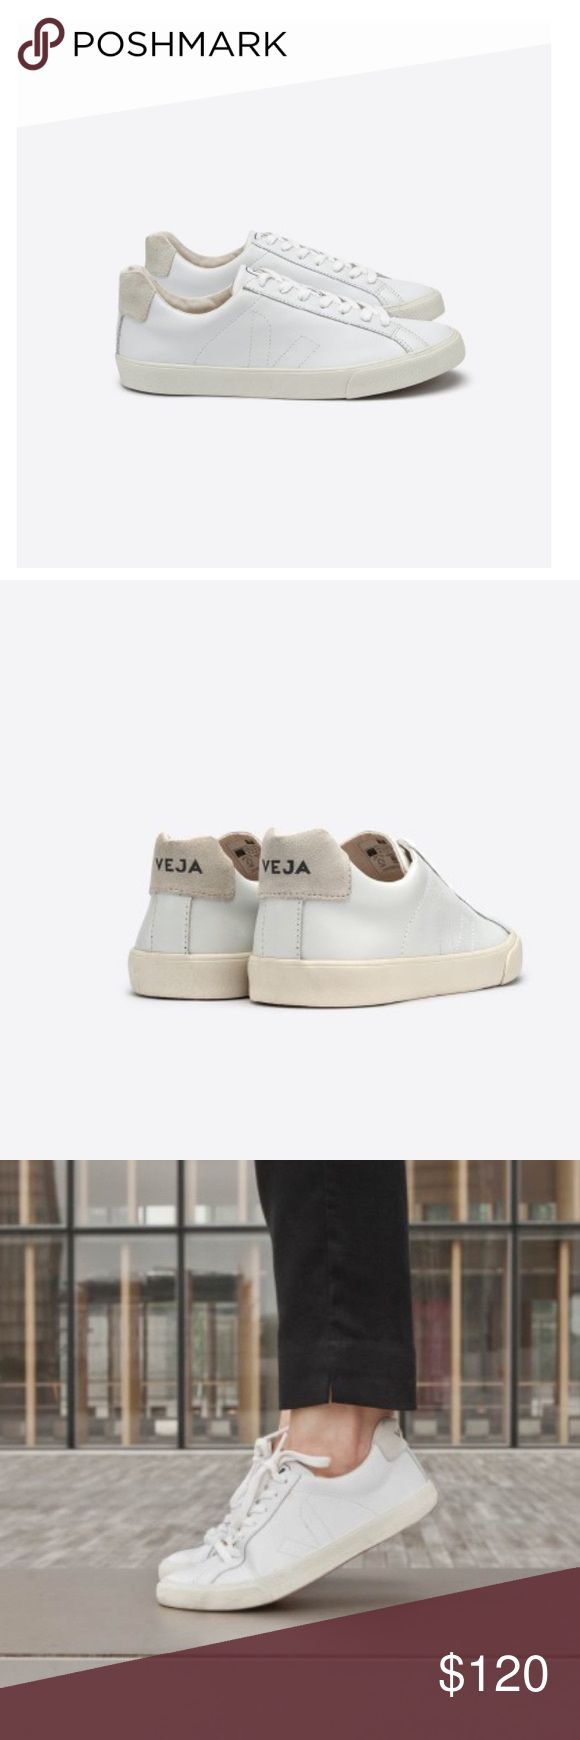 Veja Esplar Leather White Size 37 New with out box worn once for a photo shoot Veja Shoes Sneakers